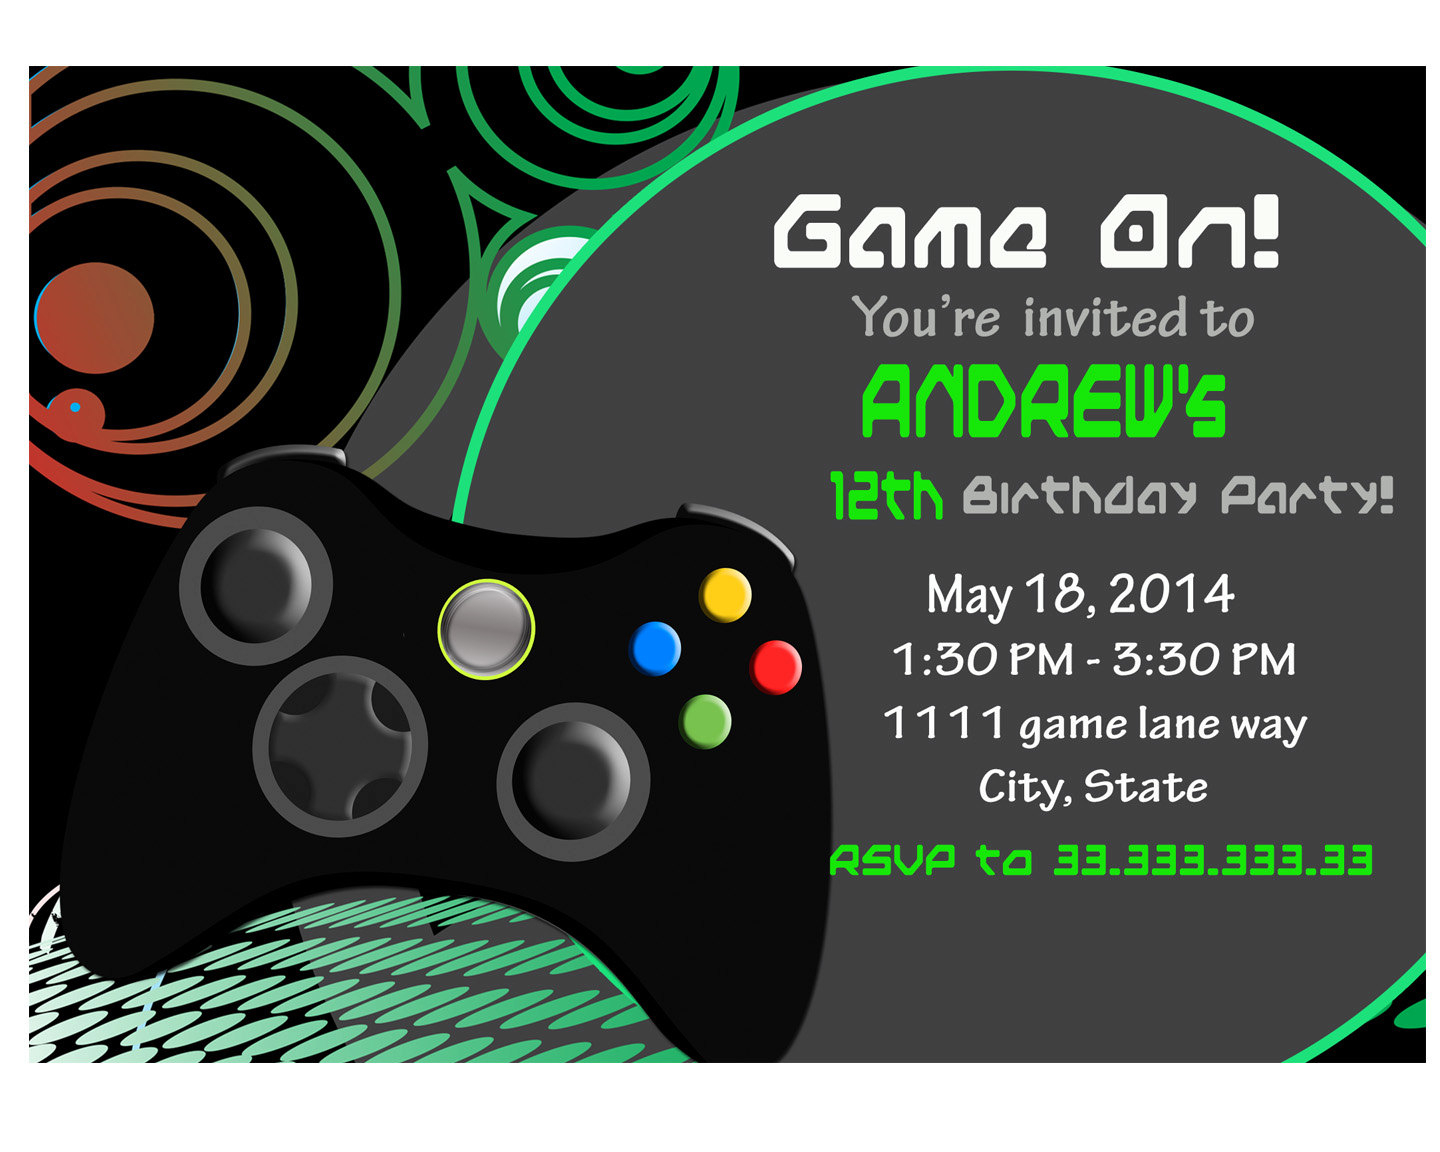 Video Game Party Invitations Video Game Party Invitations For Owning - Free Printable Video Game Party Invitations